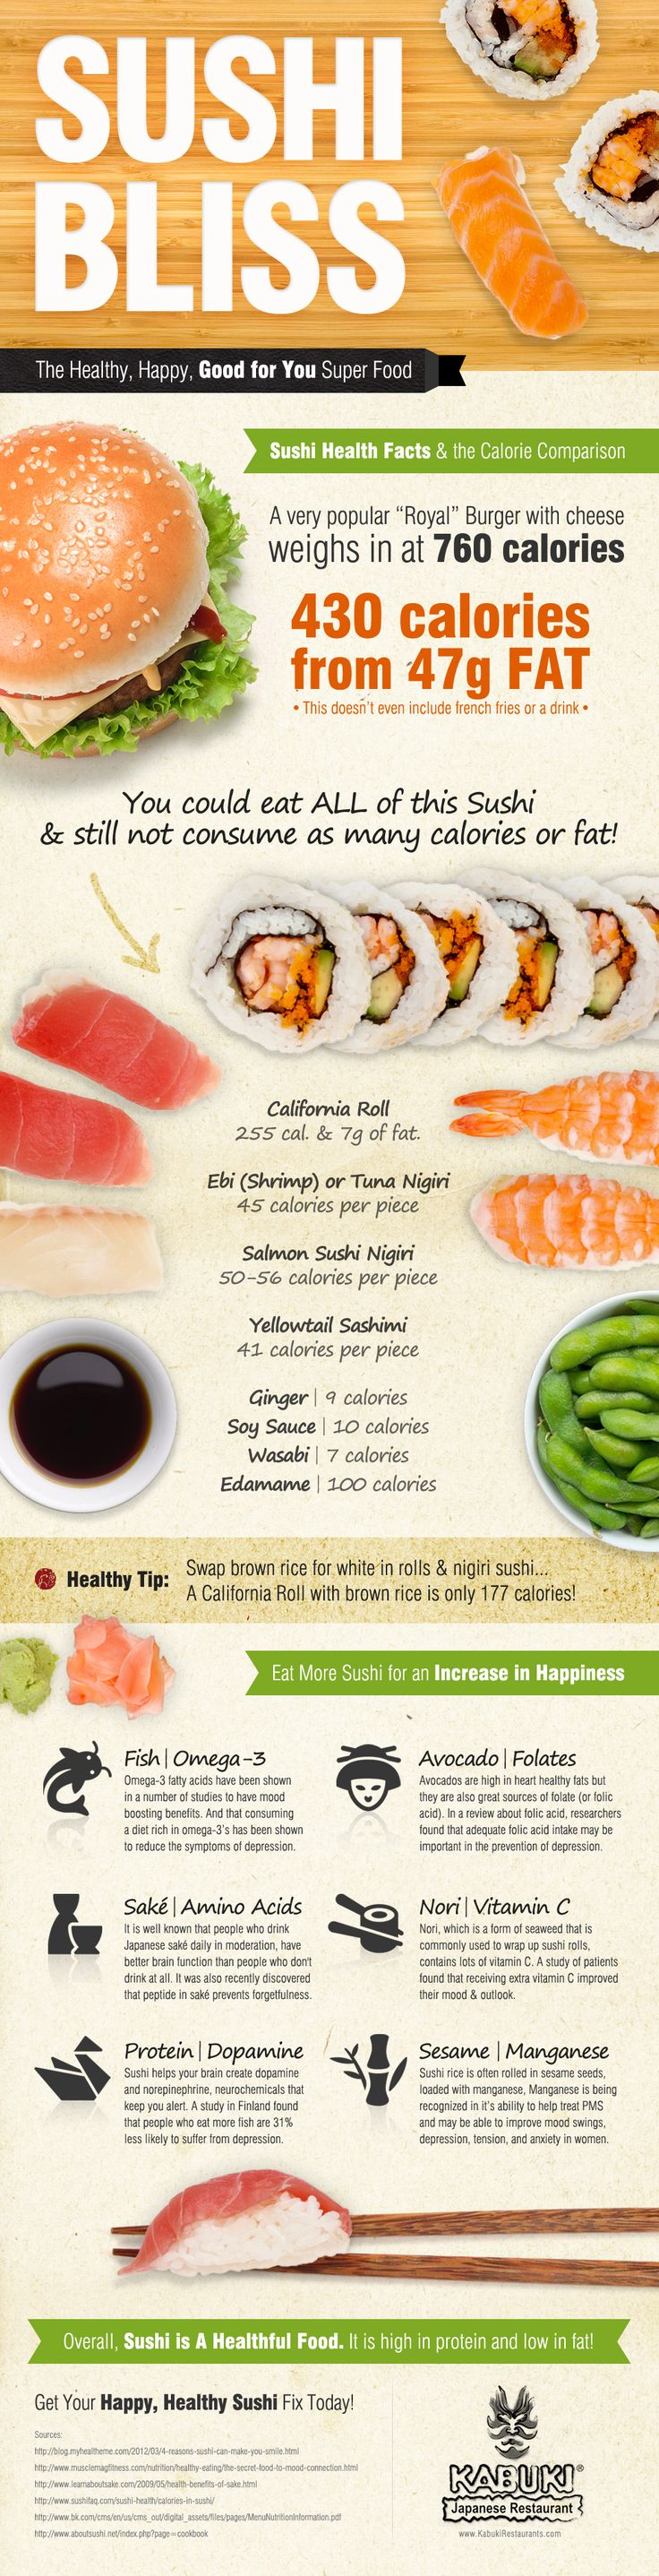 How Healthy Is Sushi? #Infographic #Health #sushi